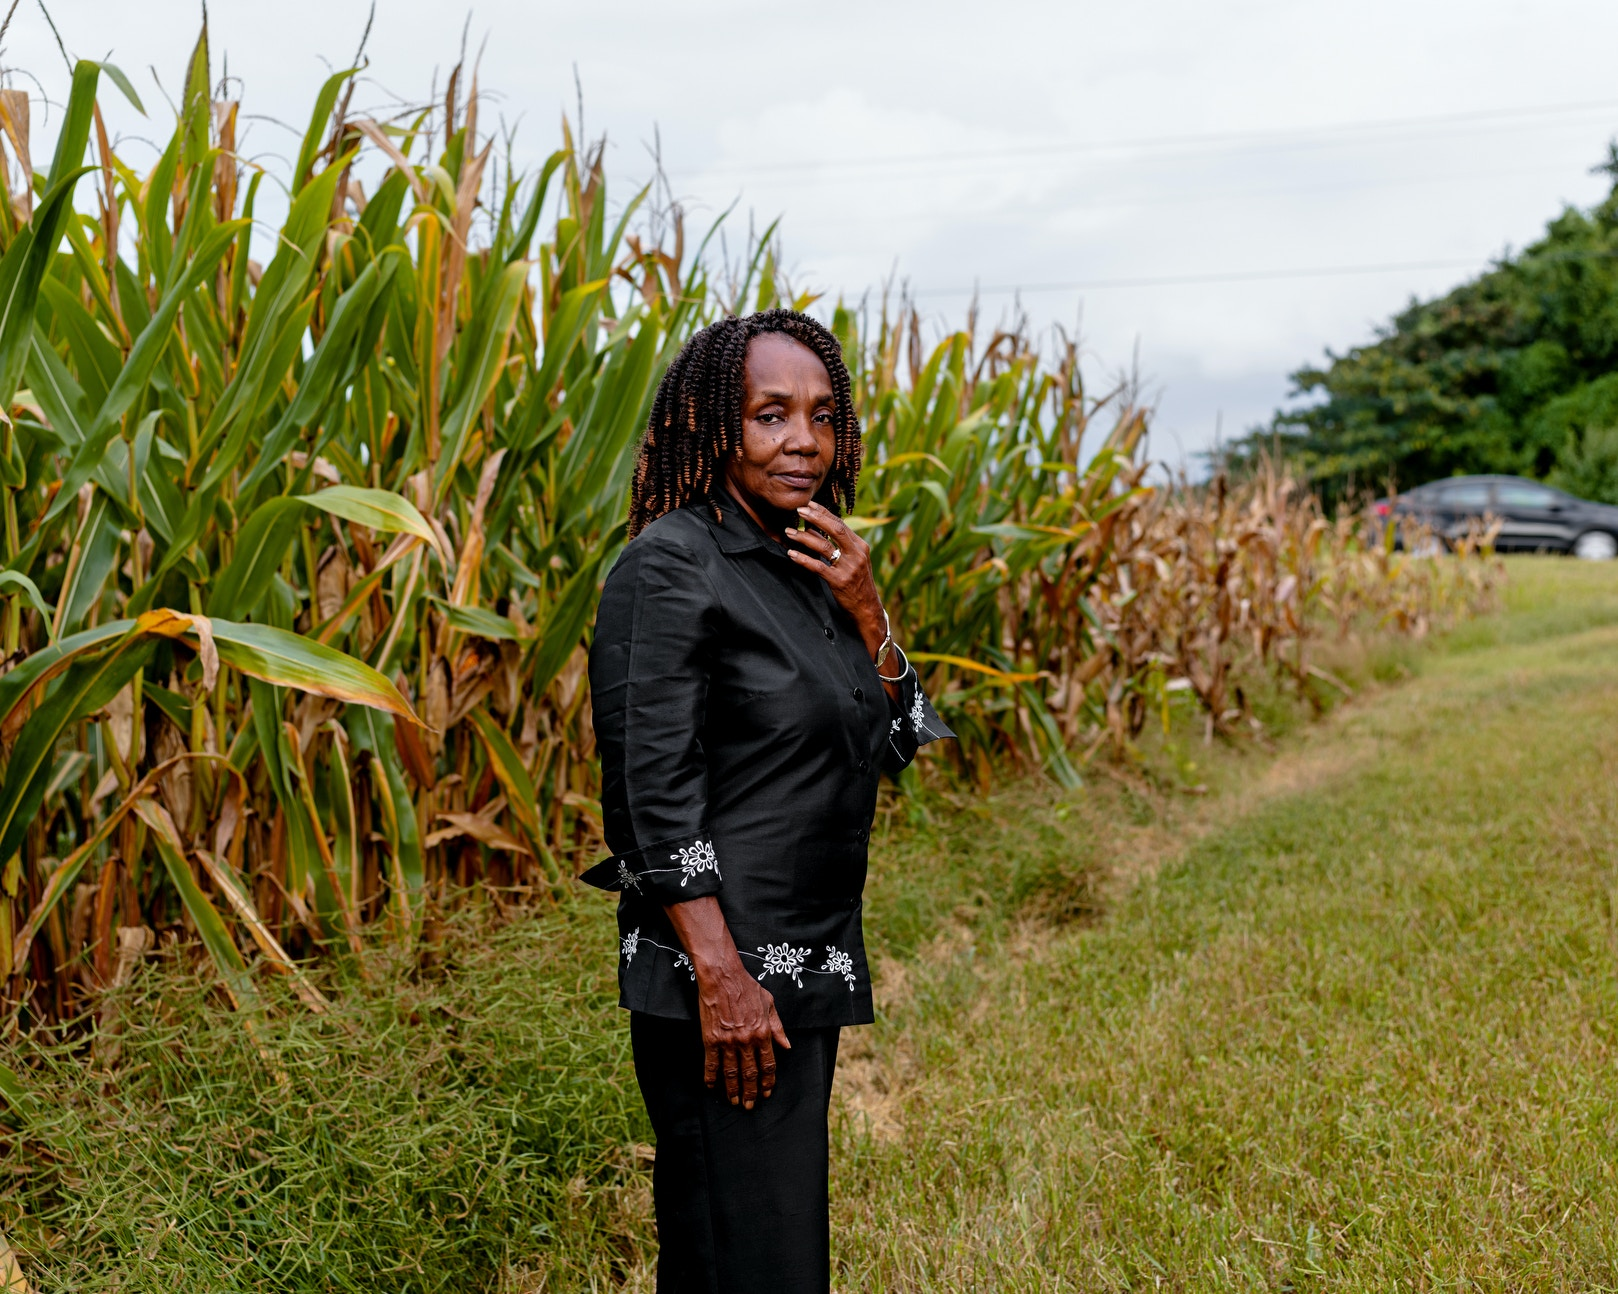 COURTLAND, AL - August 19, 2020: Brenda Hampton stands outside a corn field near her house in Courtlandl CREDIT: Johnathon Kelso for The Intercept.